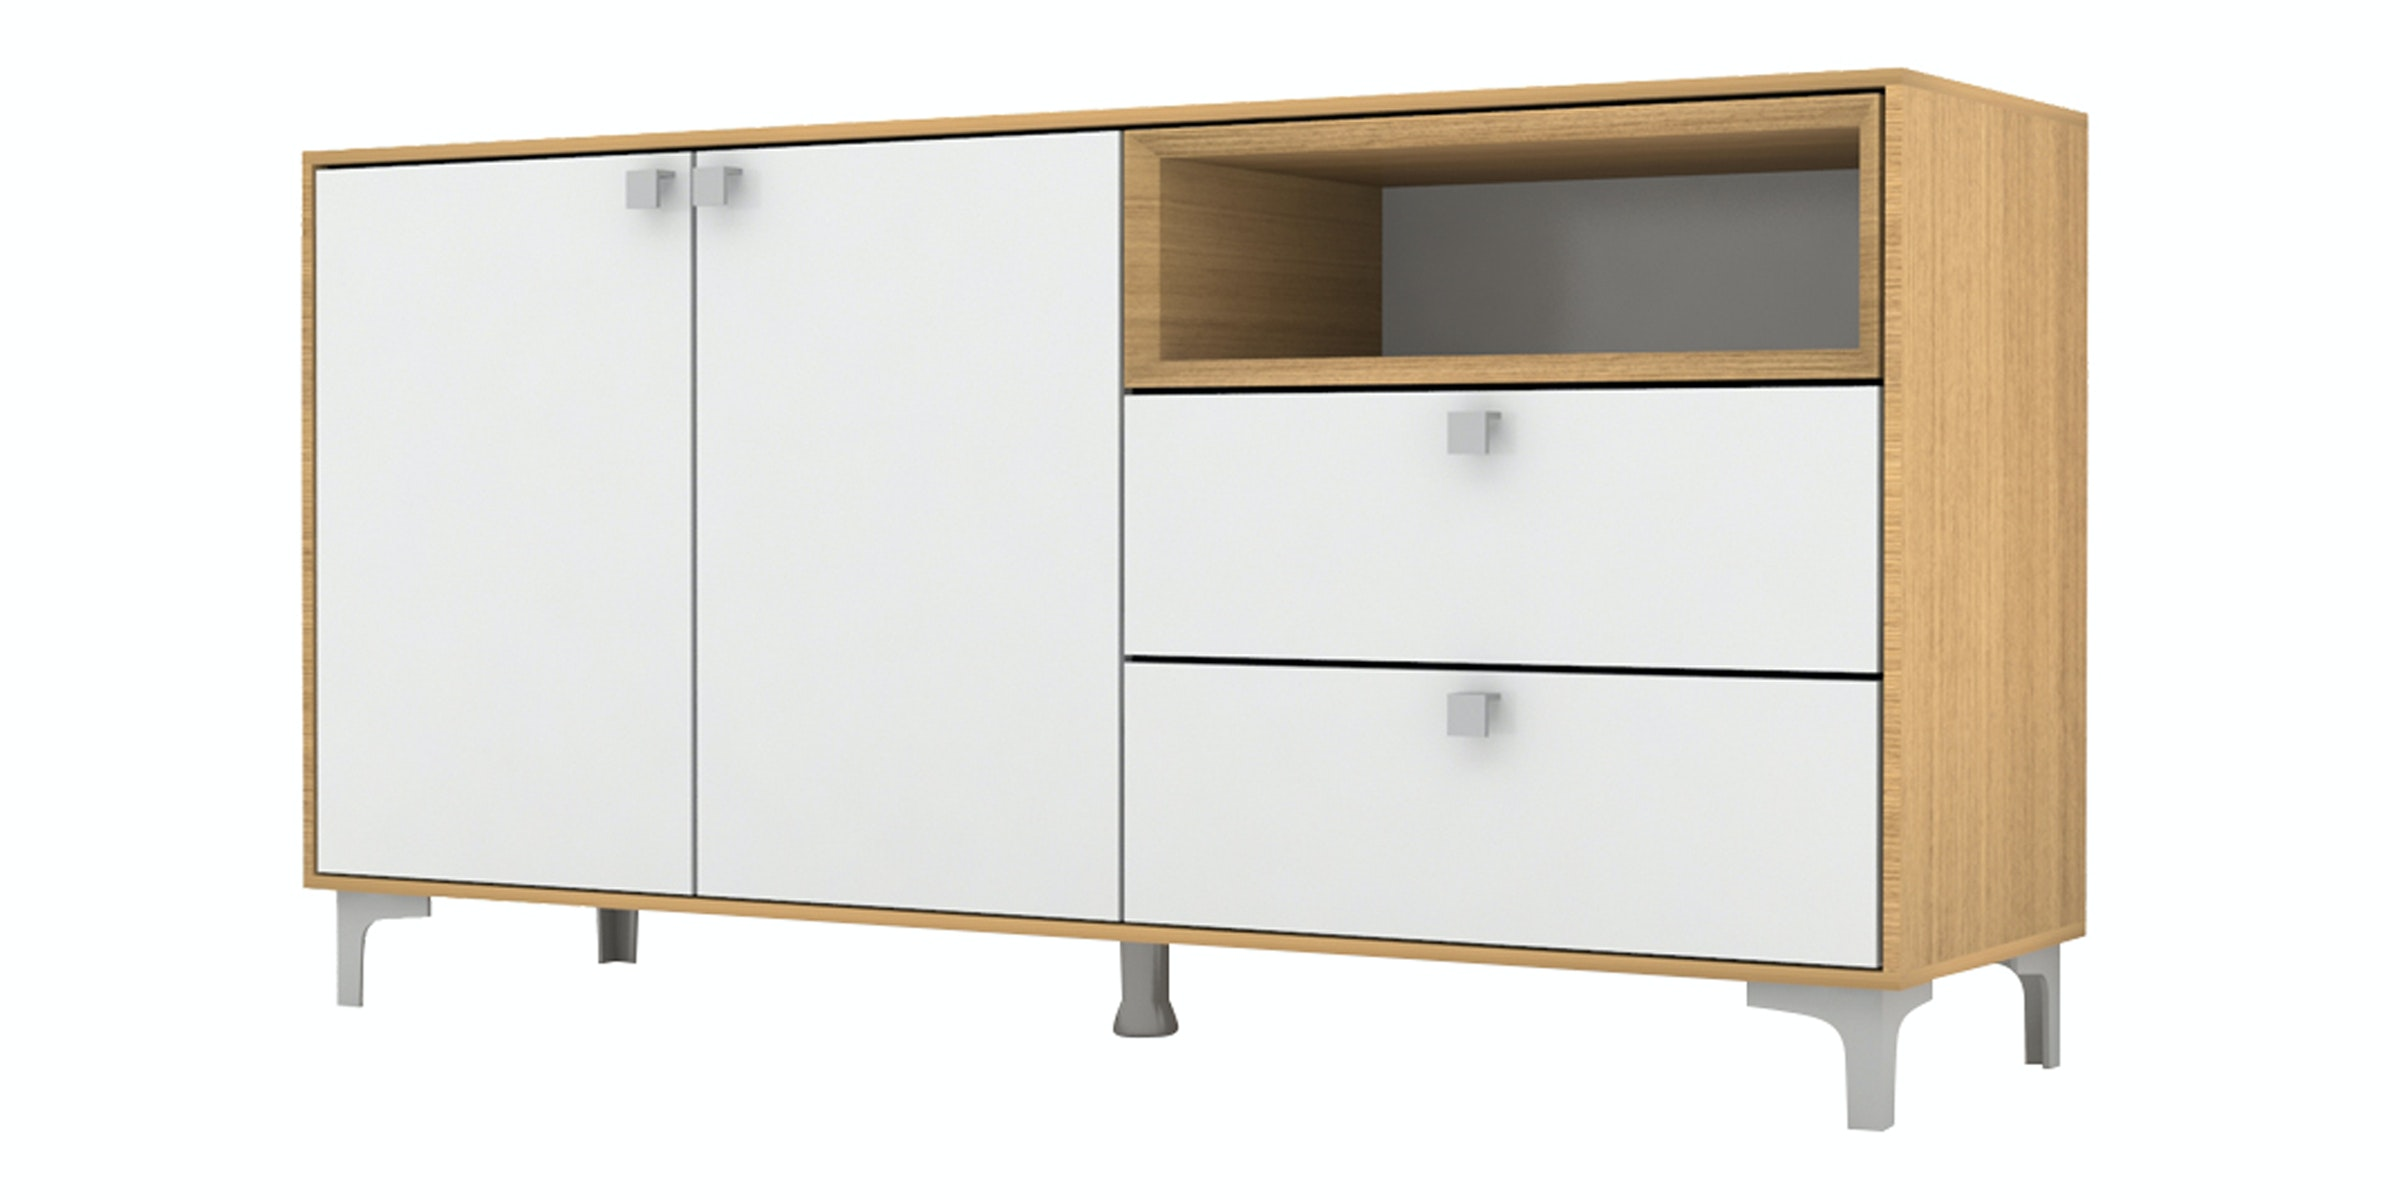 Case Furniture Cabinet Set PCI008-03-00 Desert Oak - White